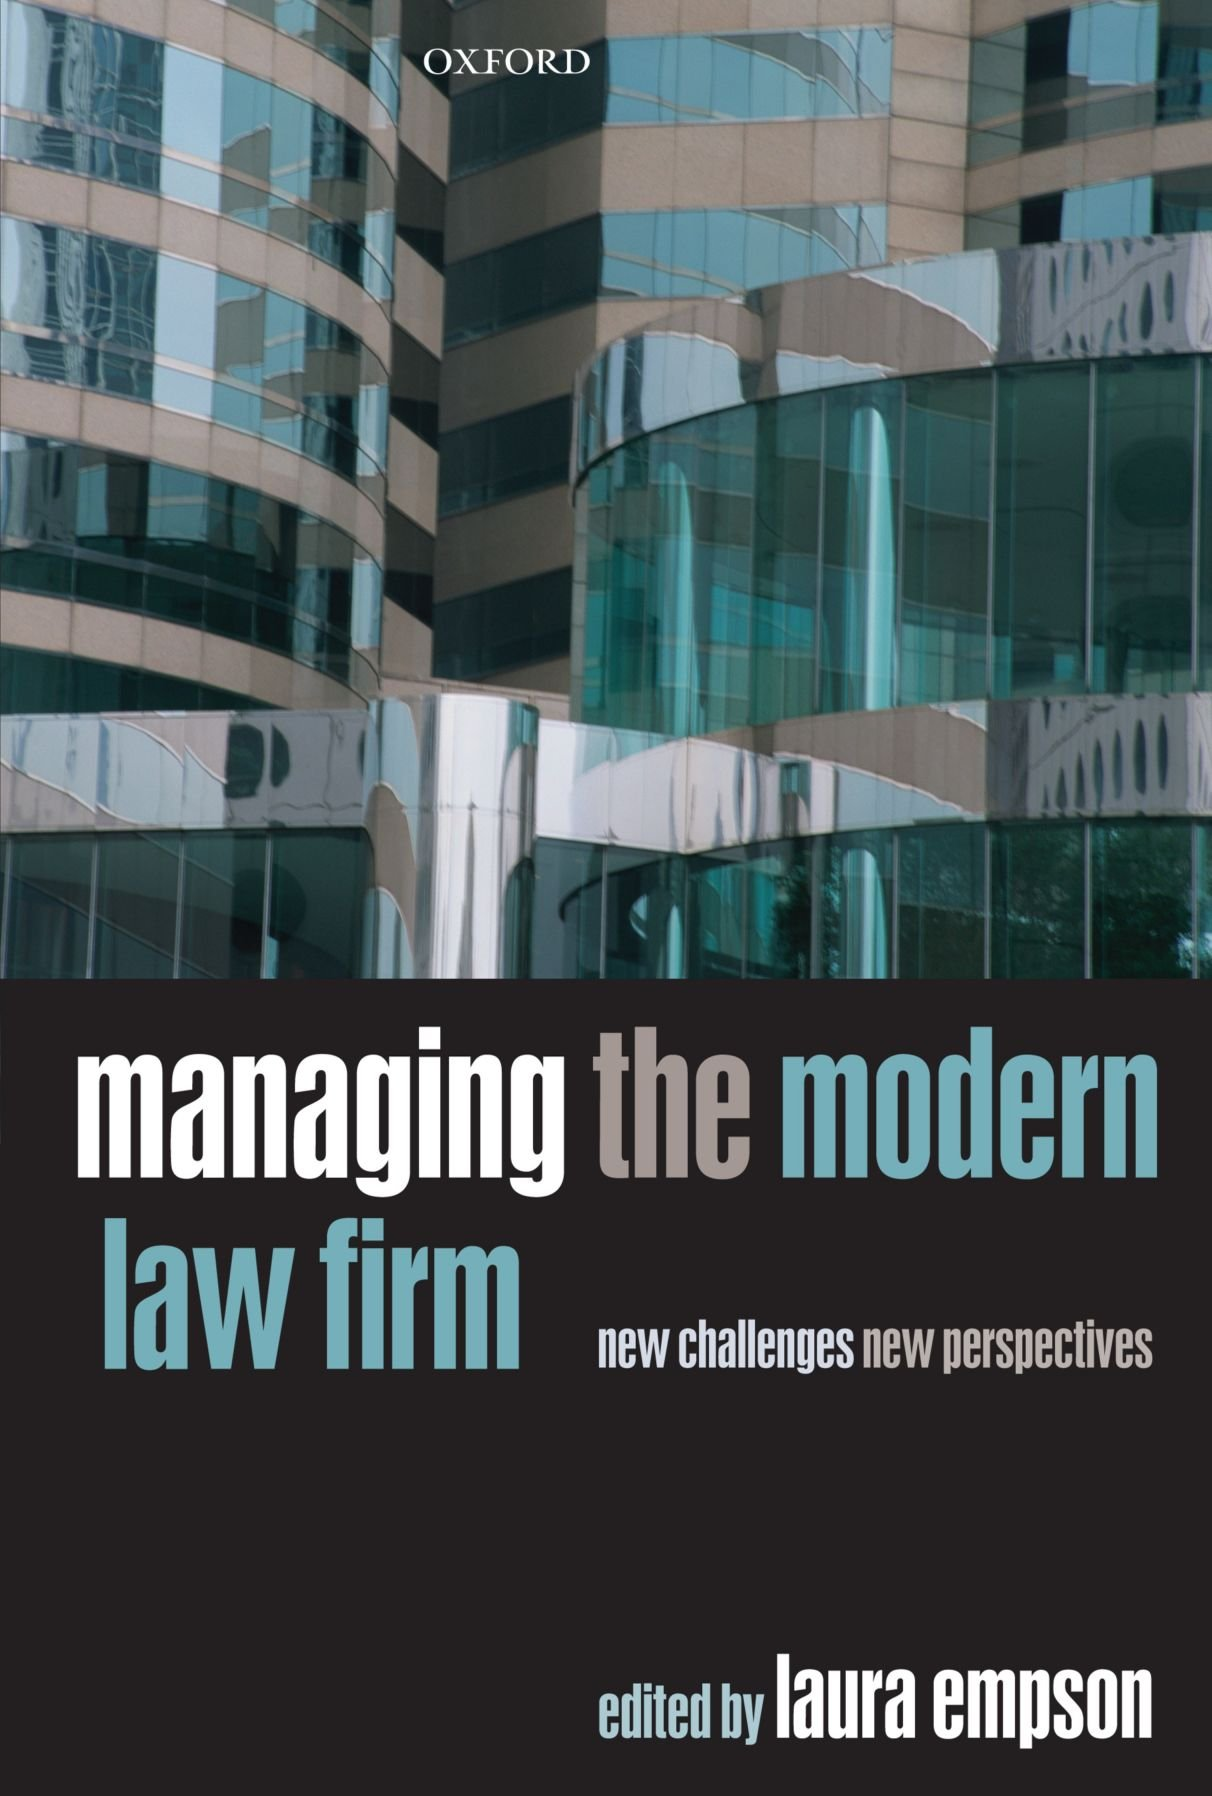 Managing the Modern Law Firm: New Challenges, New Perspectives by Oxford University Press